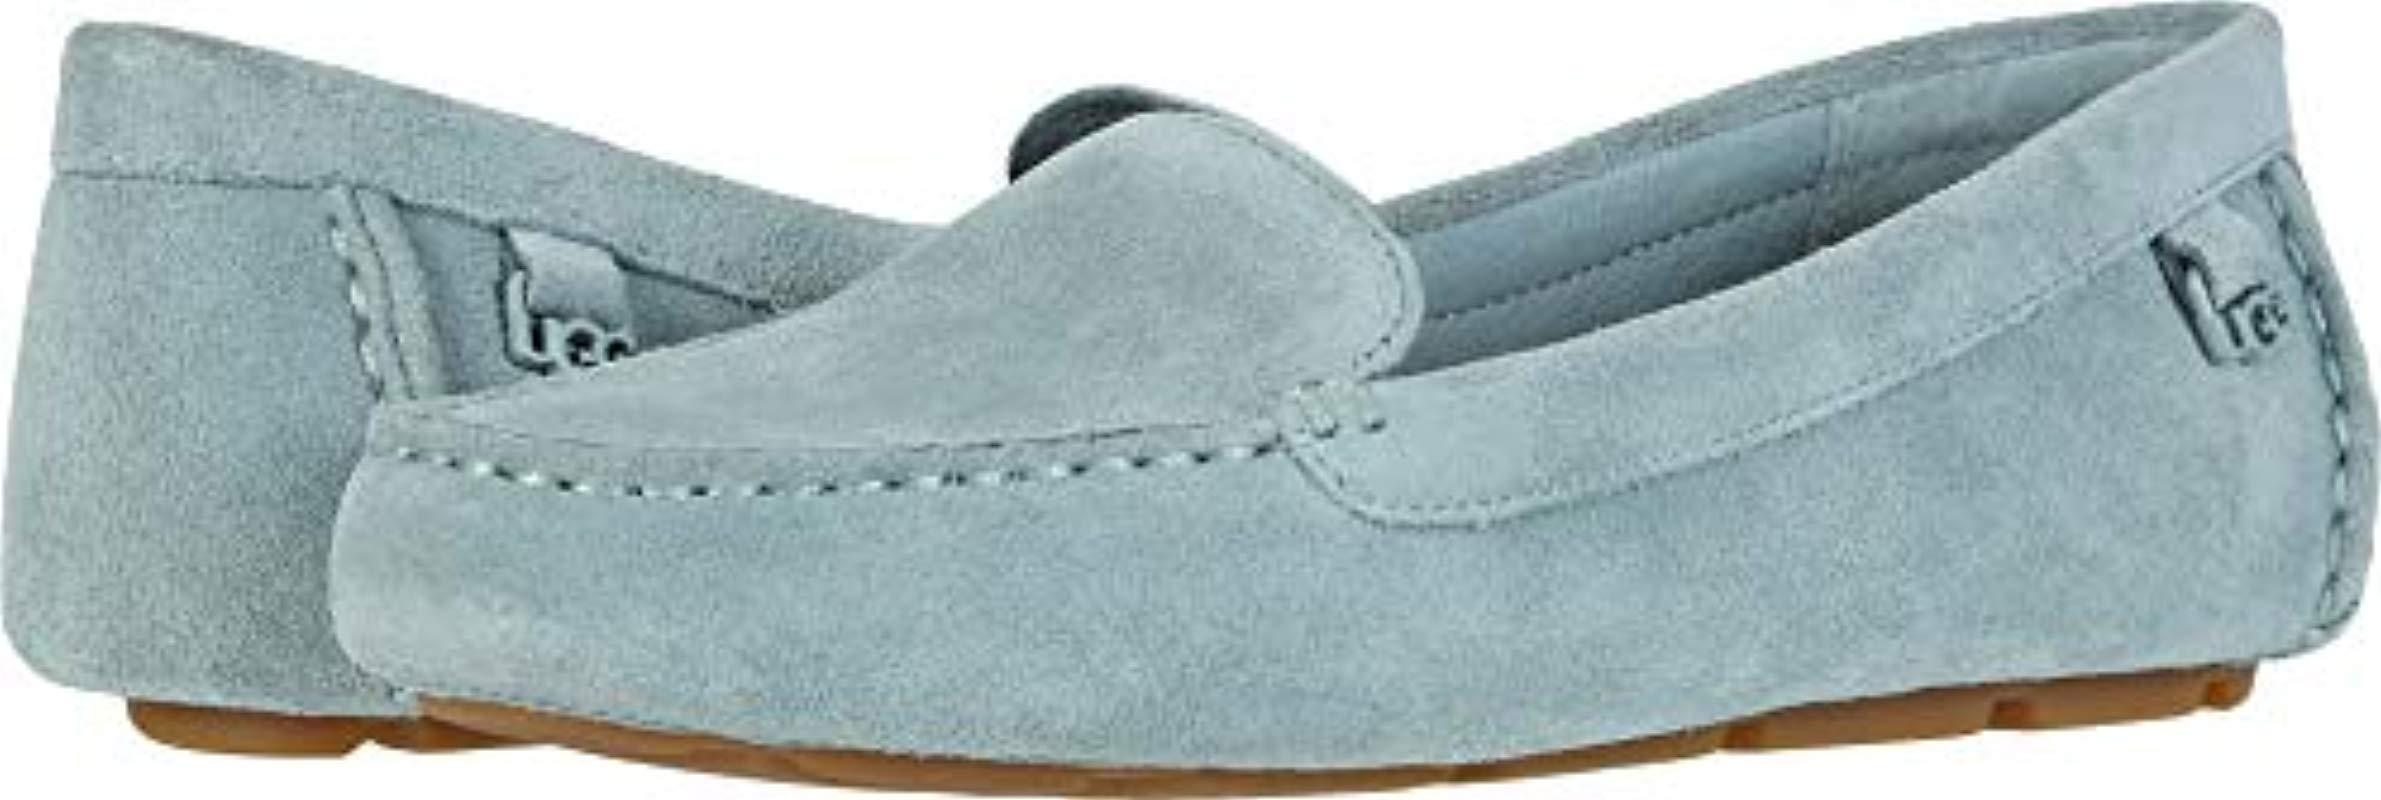 6dbafff0d04 Lyst - Ugg Flores Driving Style Loafer in Blue